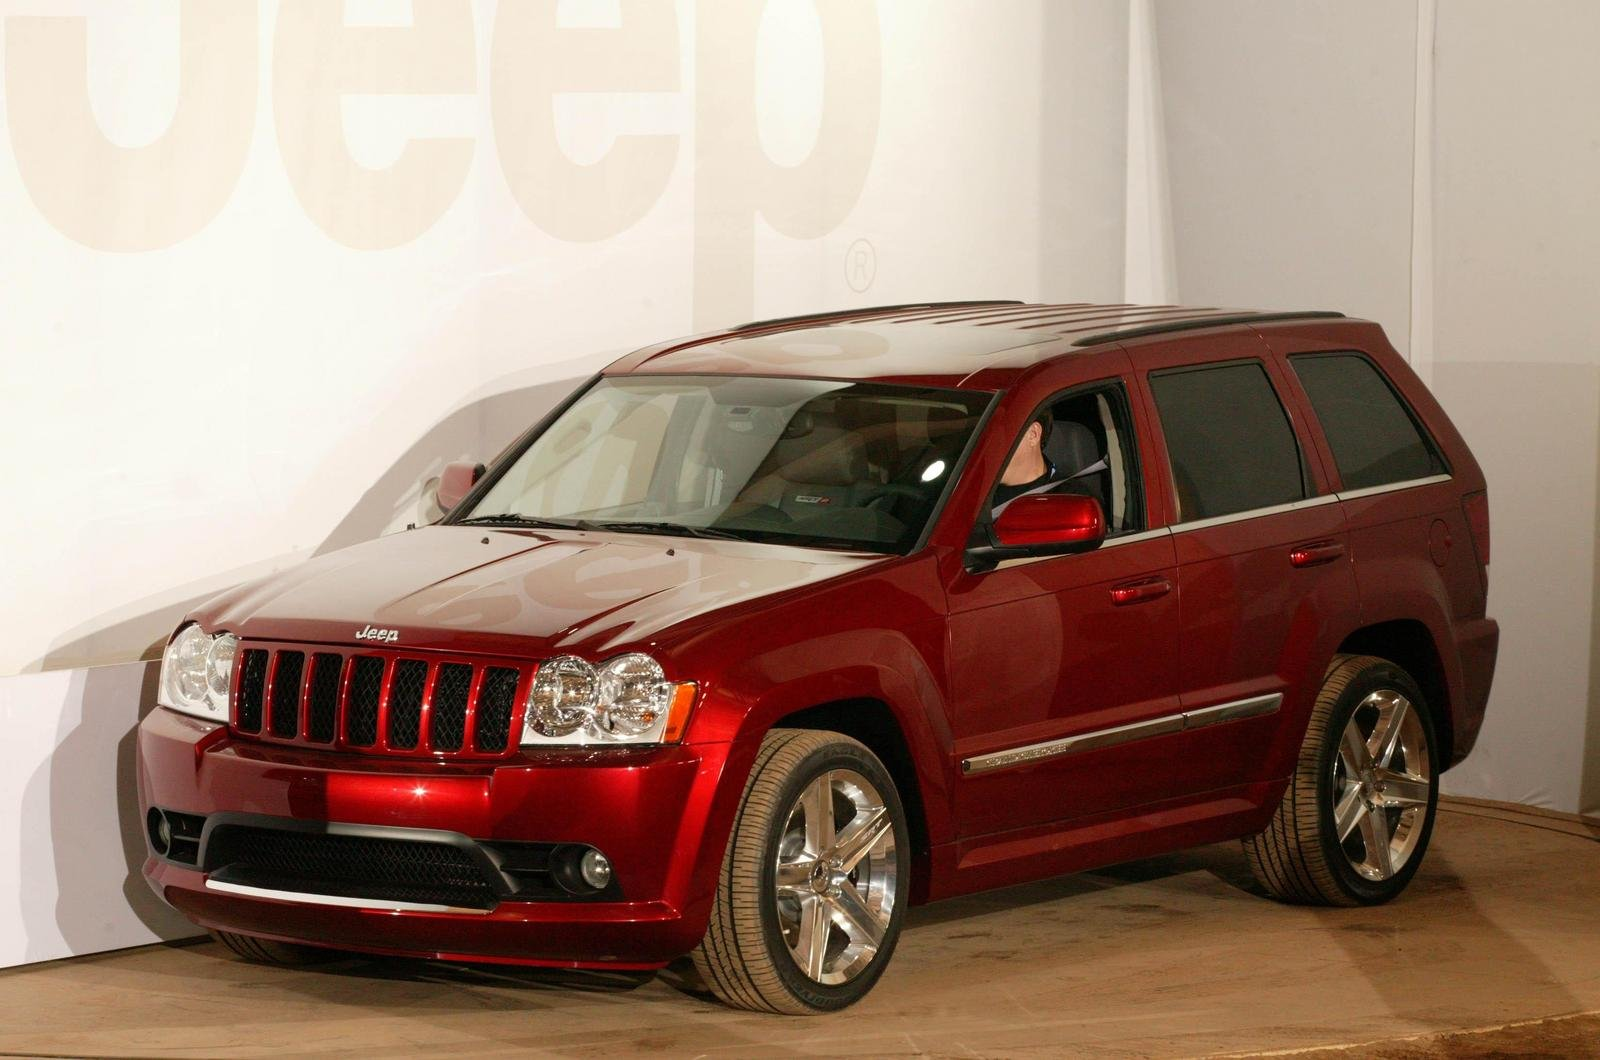 2007 jeep grand cherokee srt8 picture 42497 car review top speed. Cars Review. Best American Auto & Cars Review